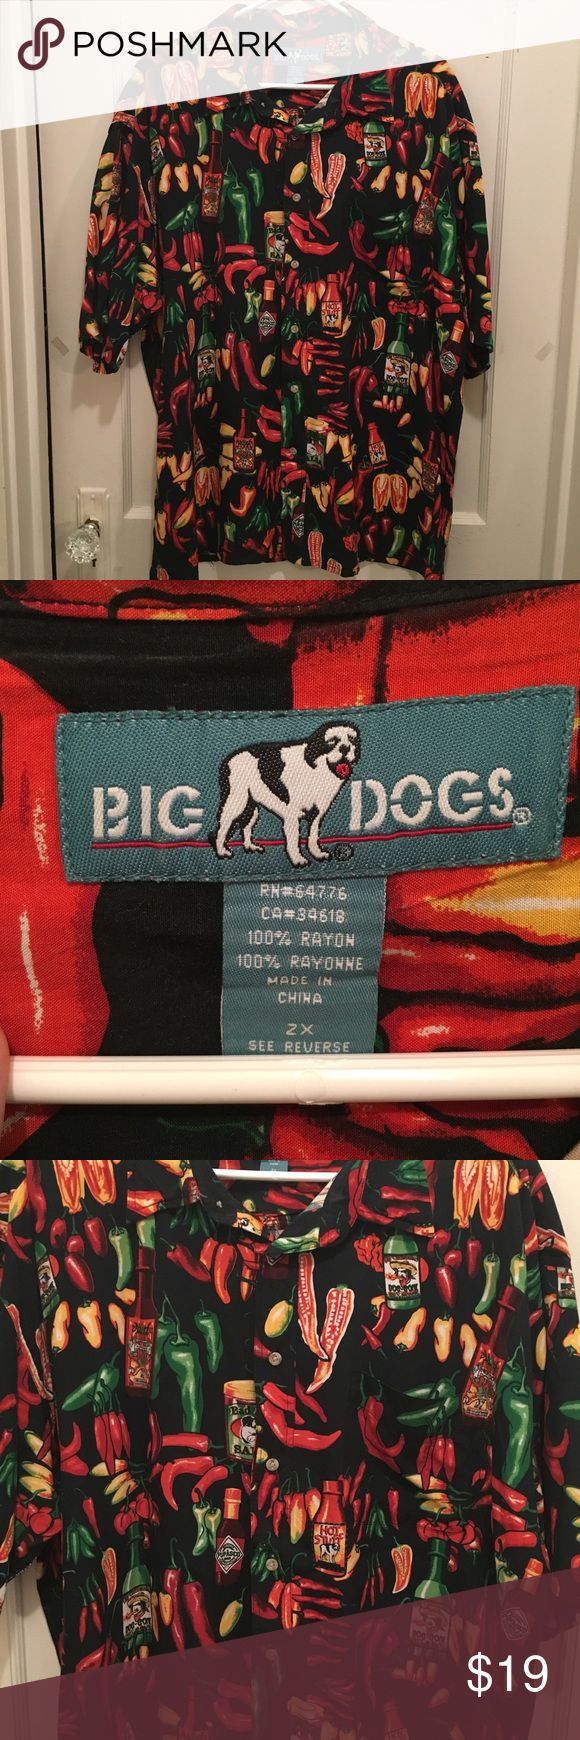 BIG DOGs Peppers and Hot Sauce Button Down Shirt BIG DOGS button down shirt with fun peppers and hot sauce bottles all over! Super fun shirt 🌶🌶🌶 Big Dogs Shirts Casual Button Down Shirts